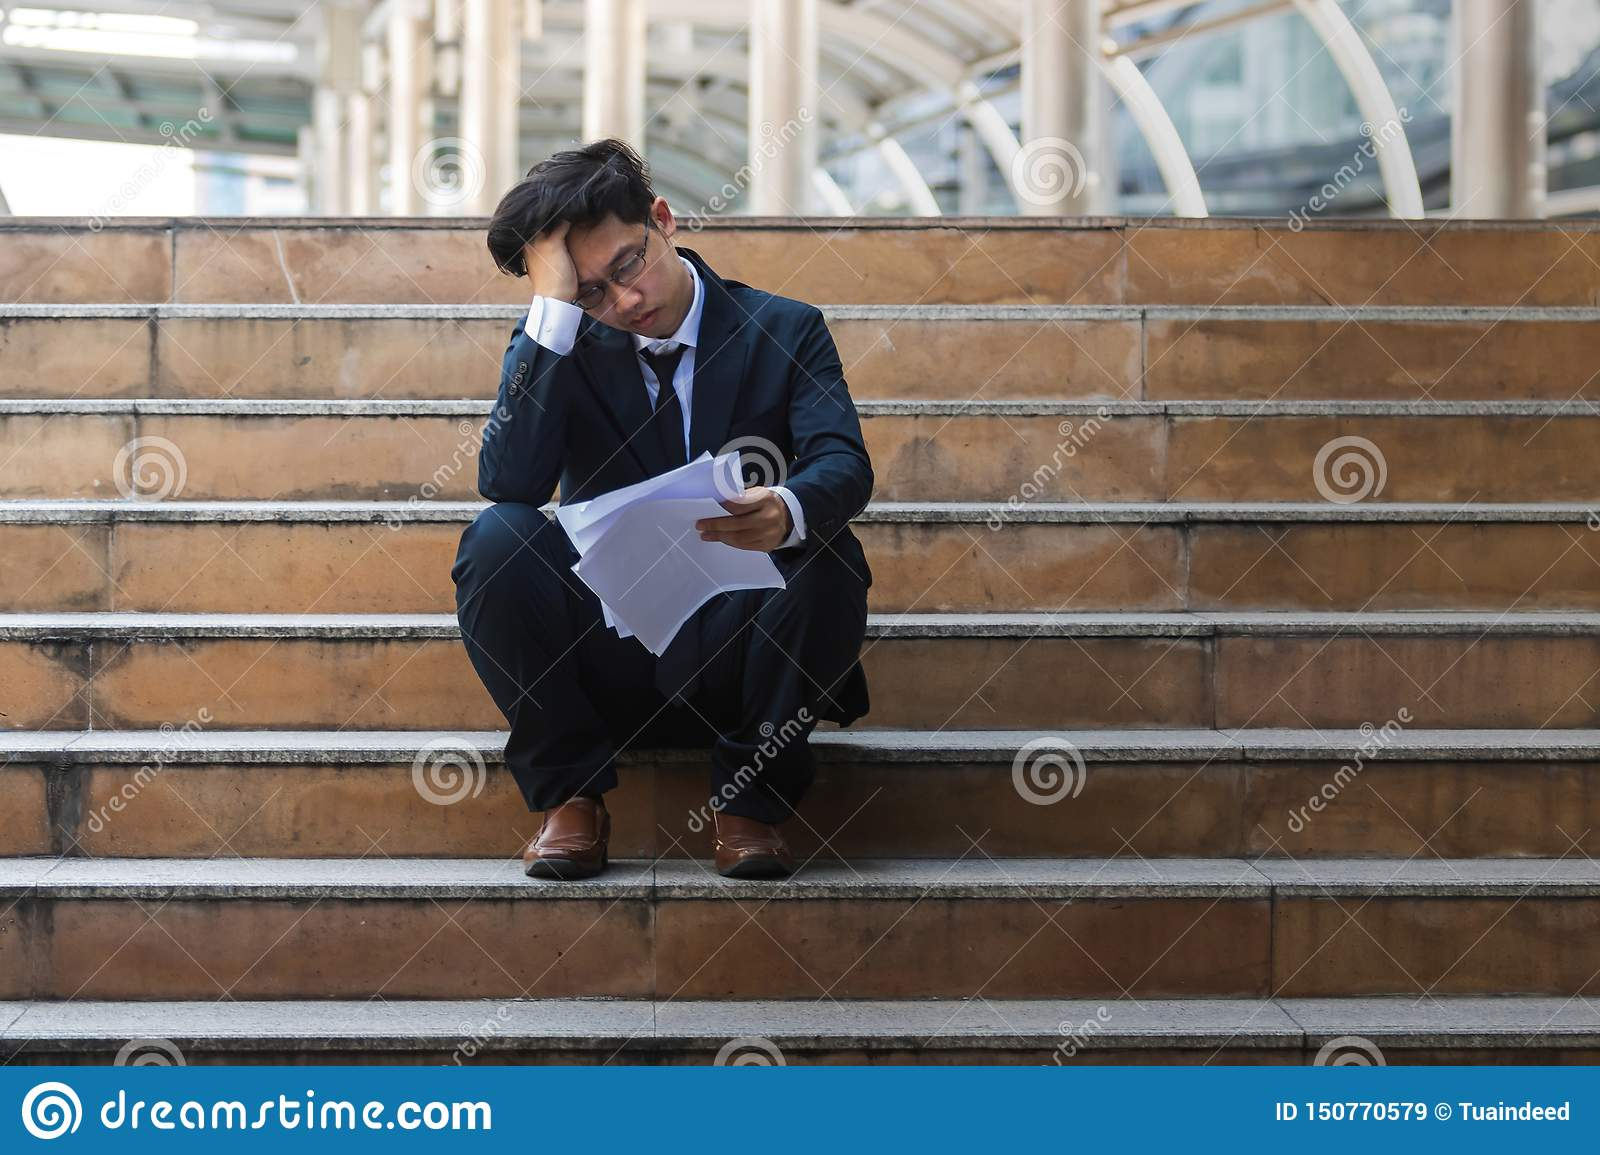 Depressed stressed young Asian business man in suit with hands on head sitting on stairs. Unemployment and layoff concept